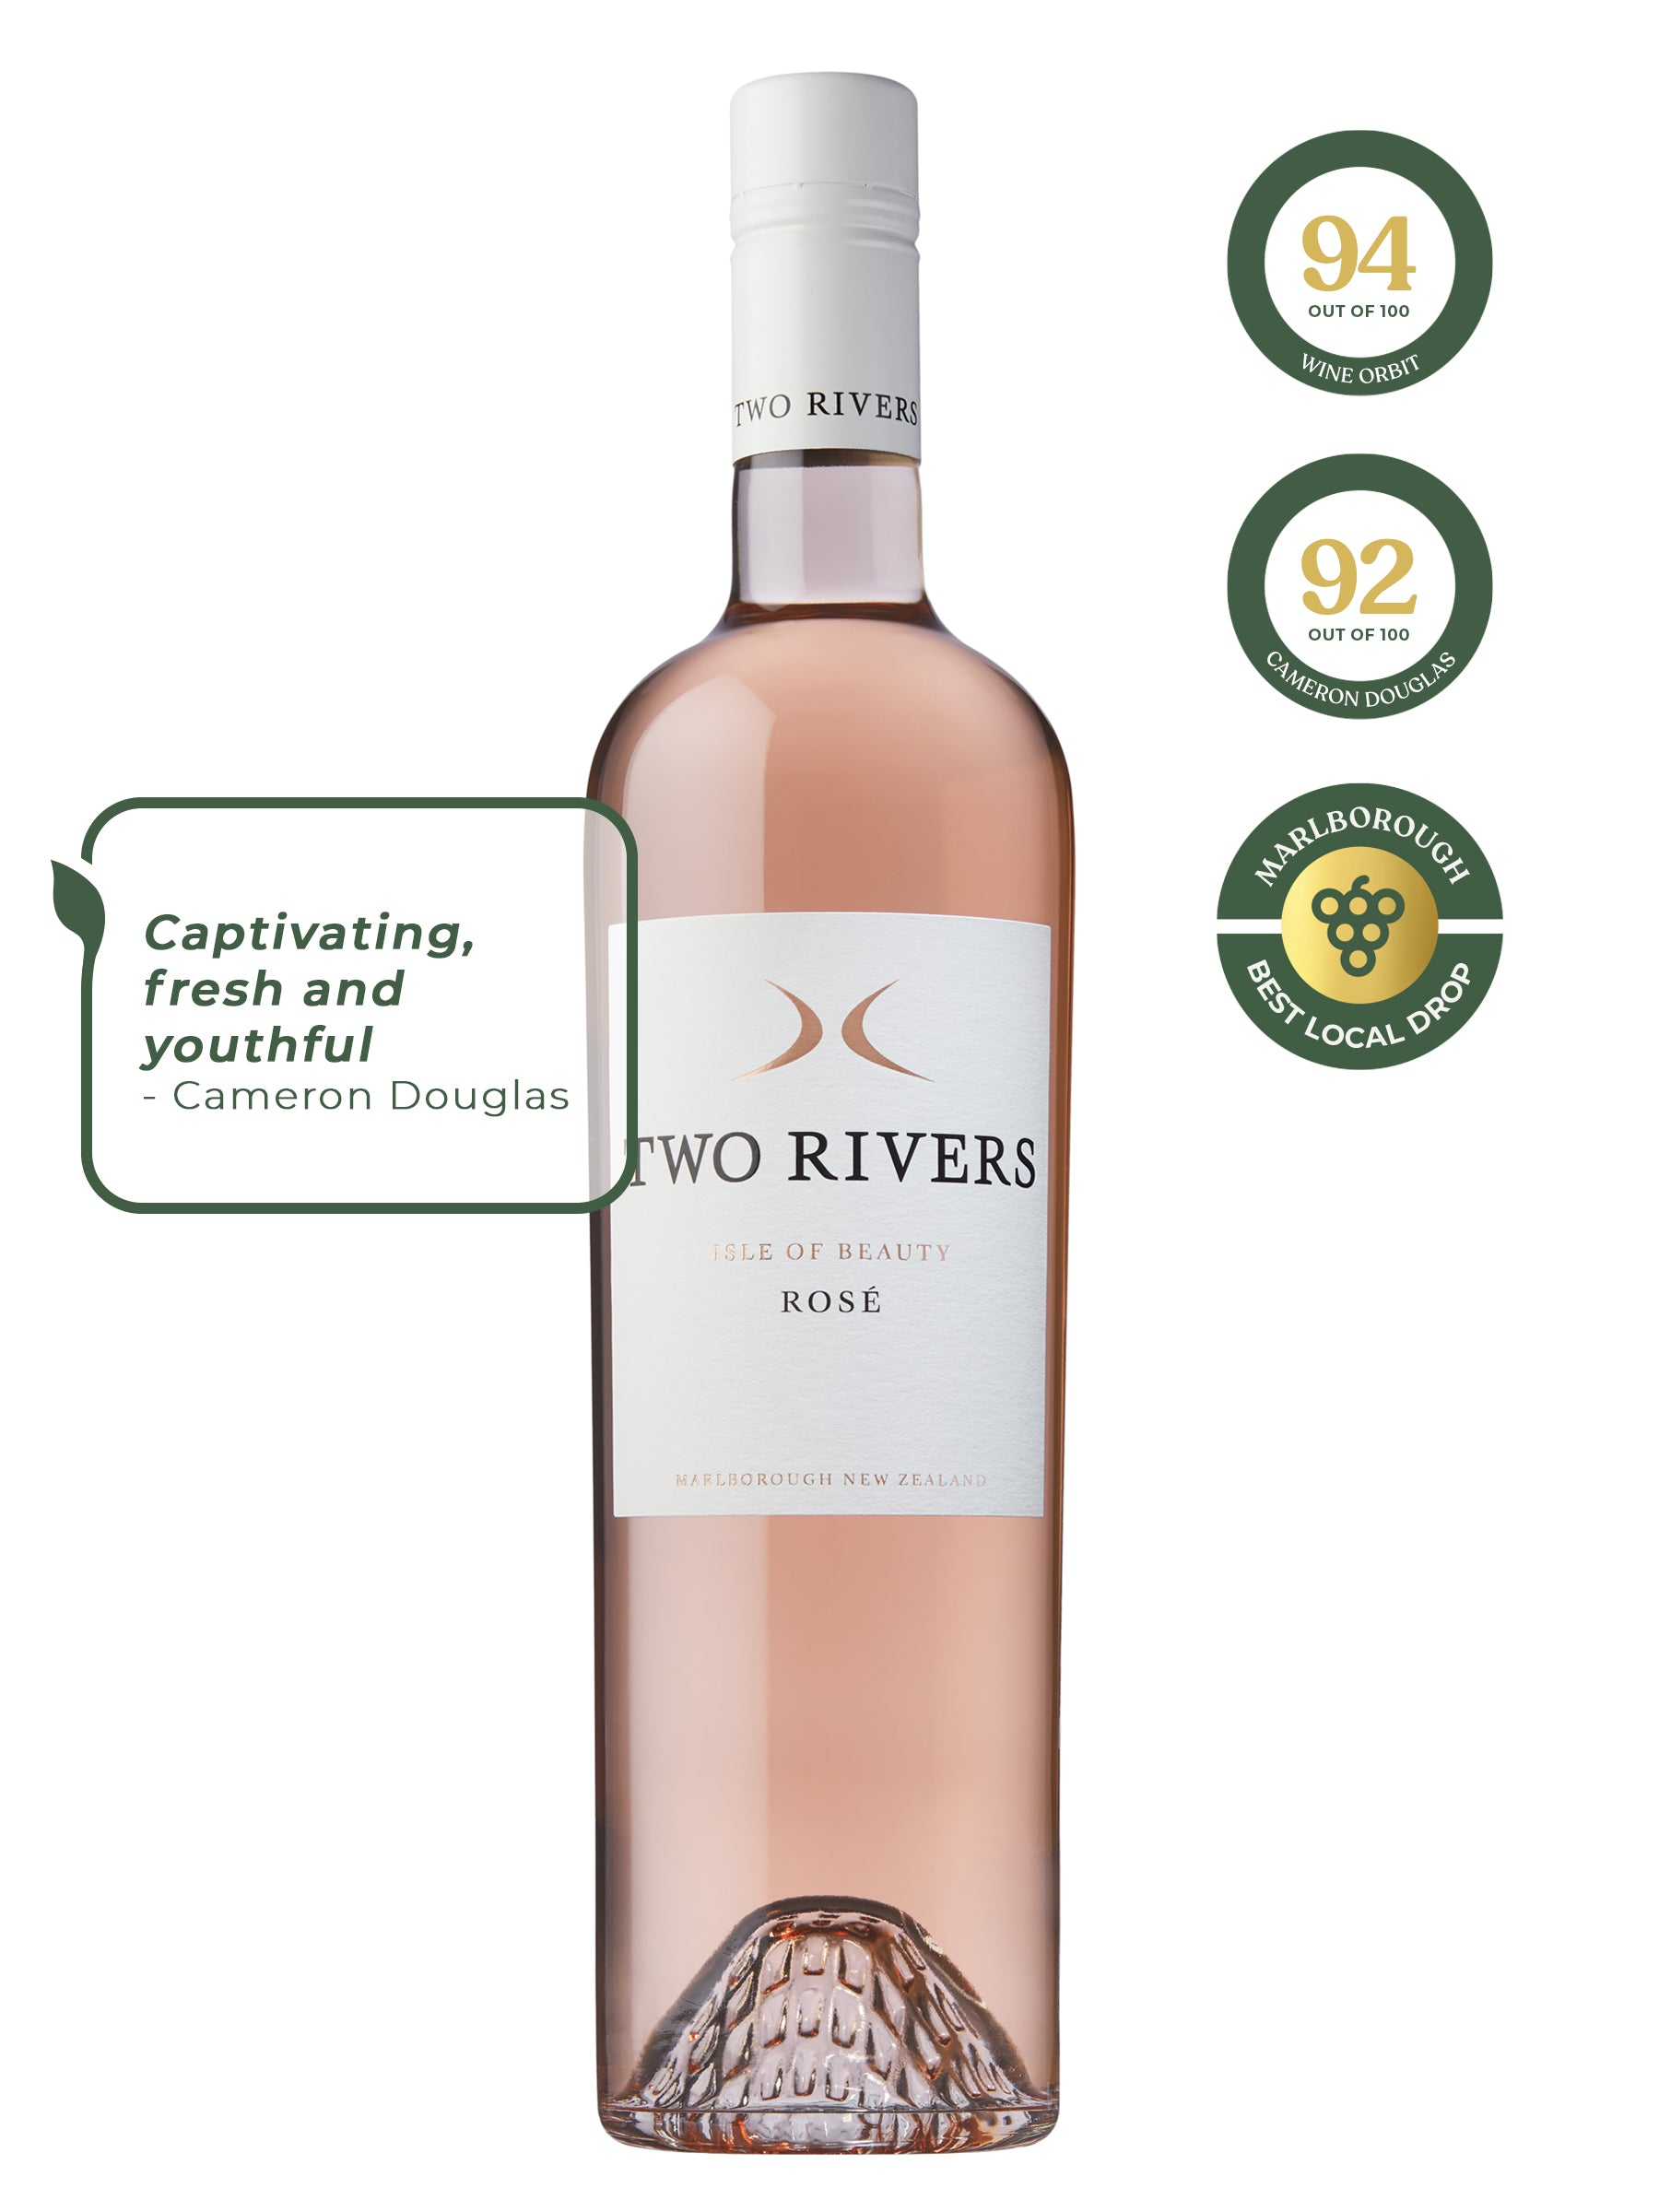 E. Two Rivers Isle of Beauty Rosé 2019 *